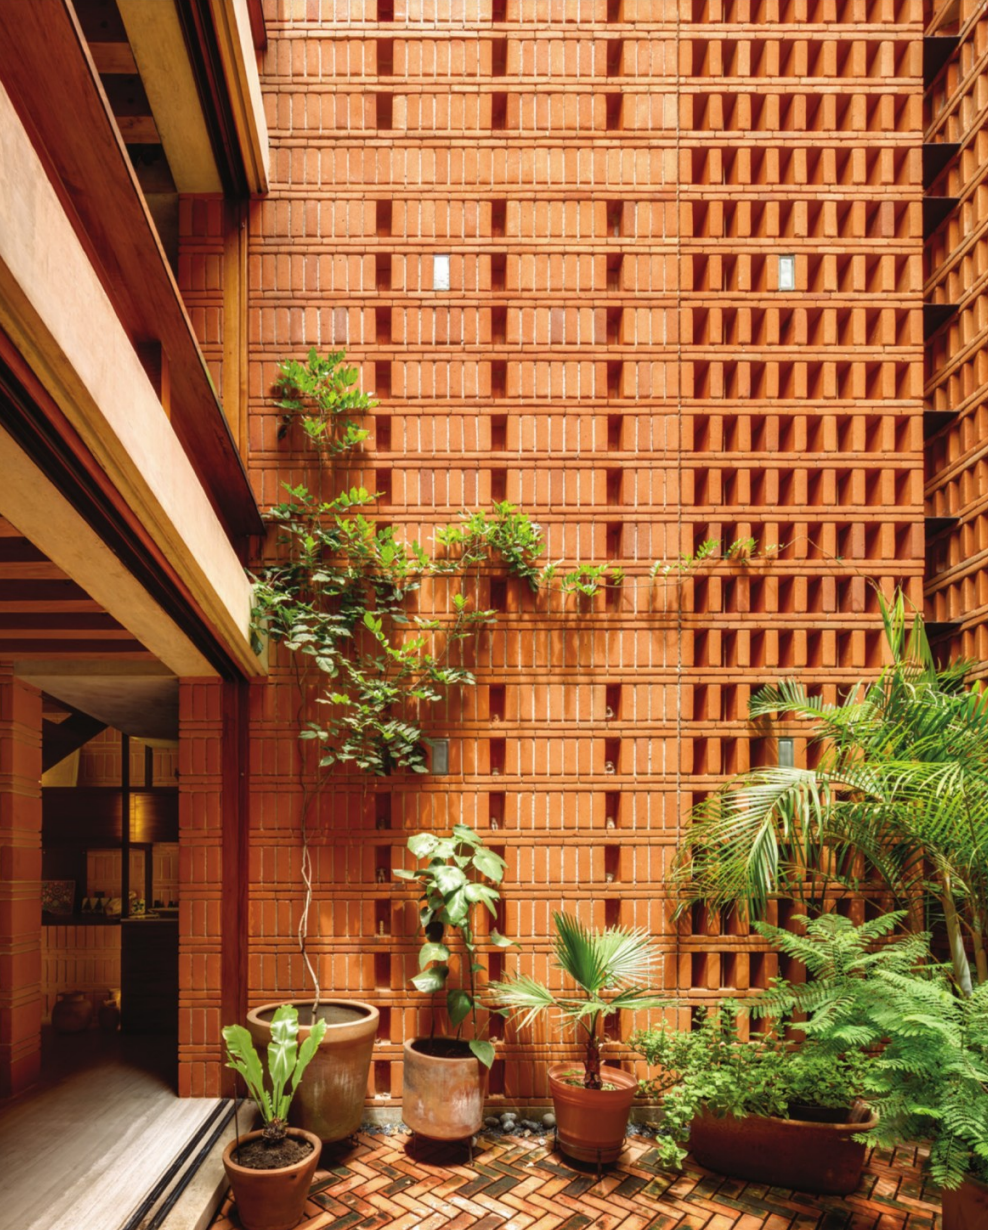 plants growing against a wall in an enclosed brick patio designed by Iturbide